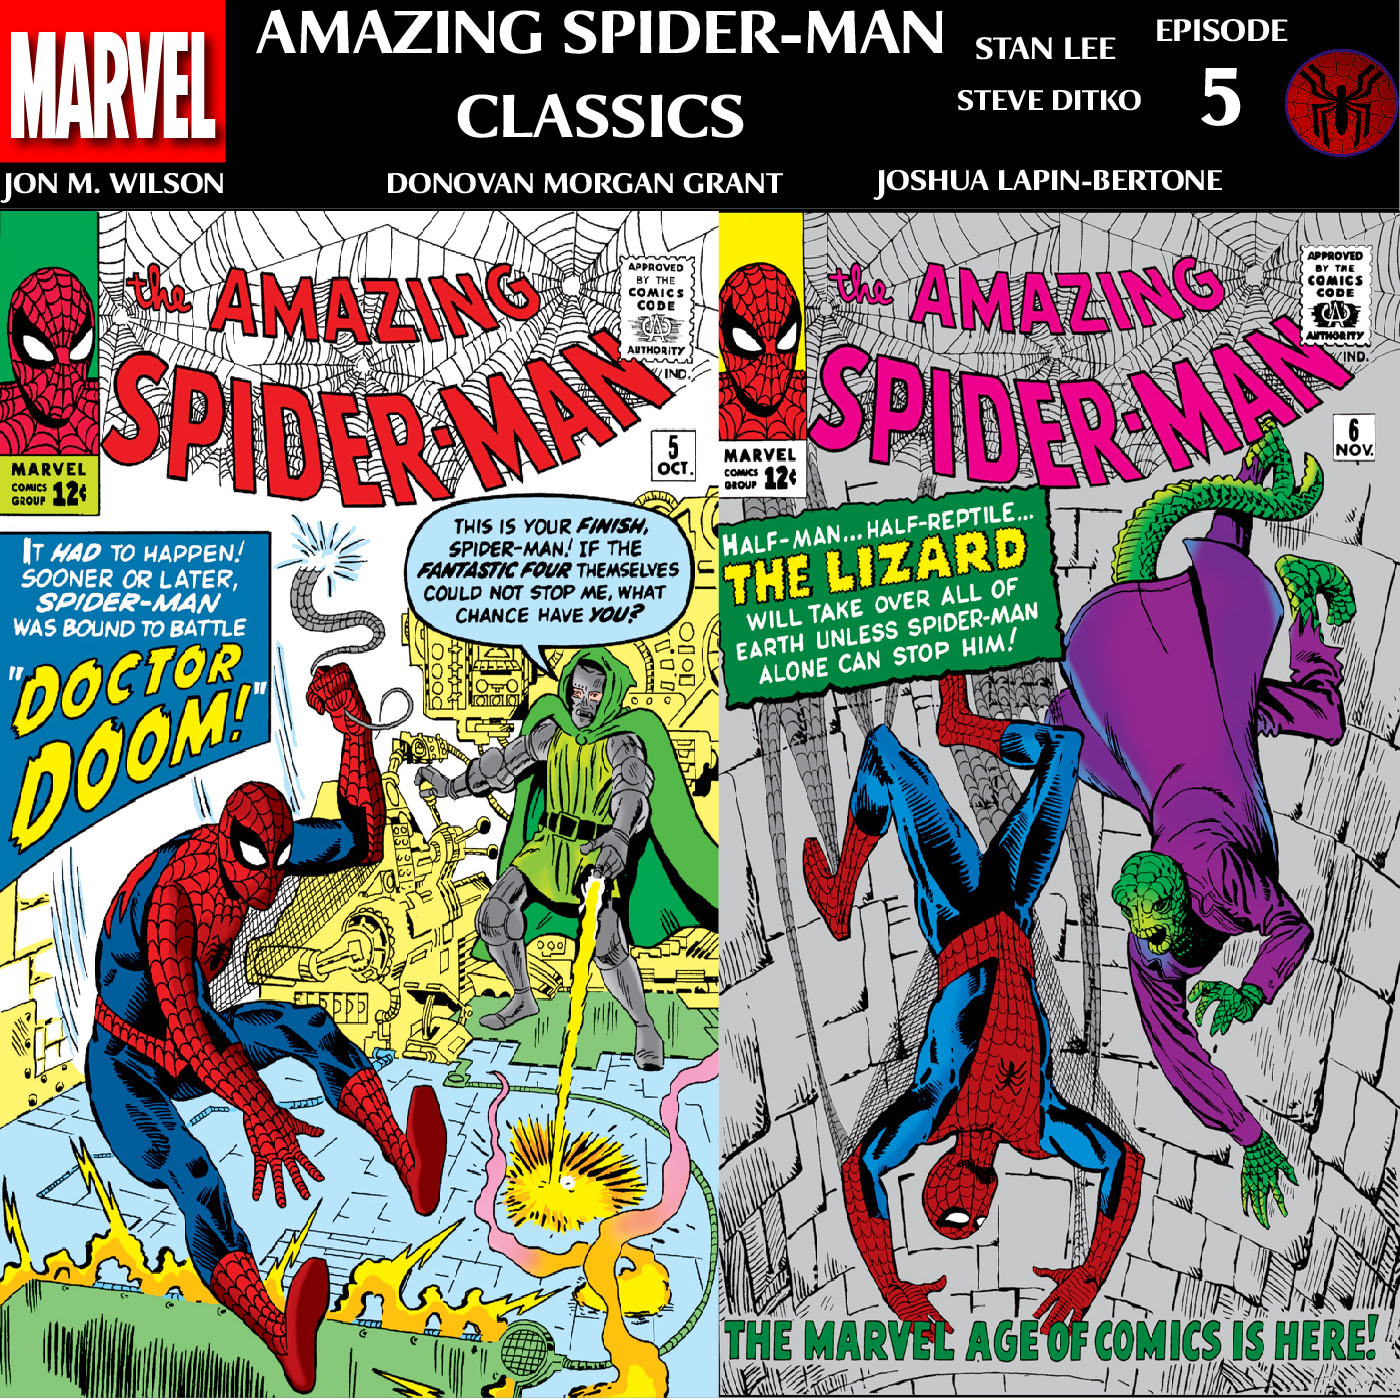 ASM Classics Episode 5: ASM 5 & 6